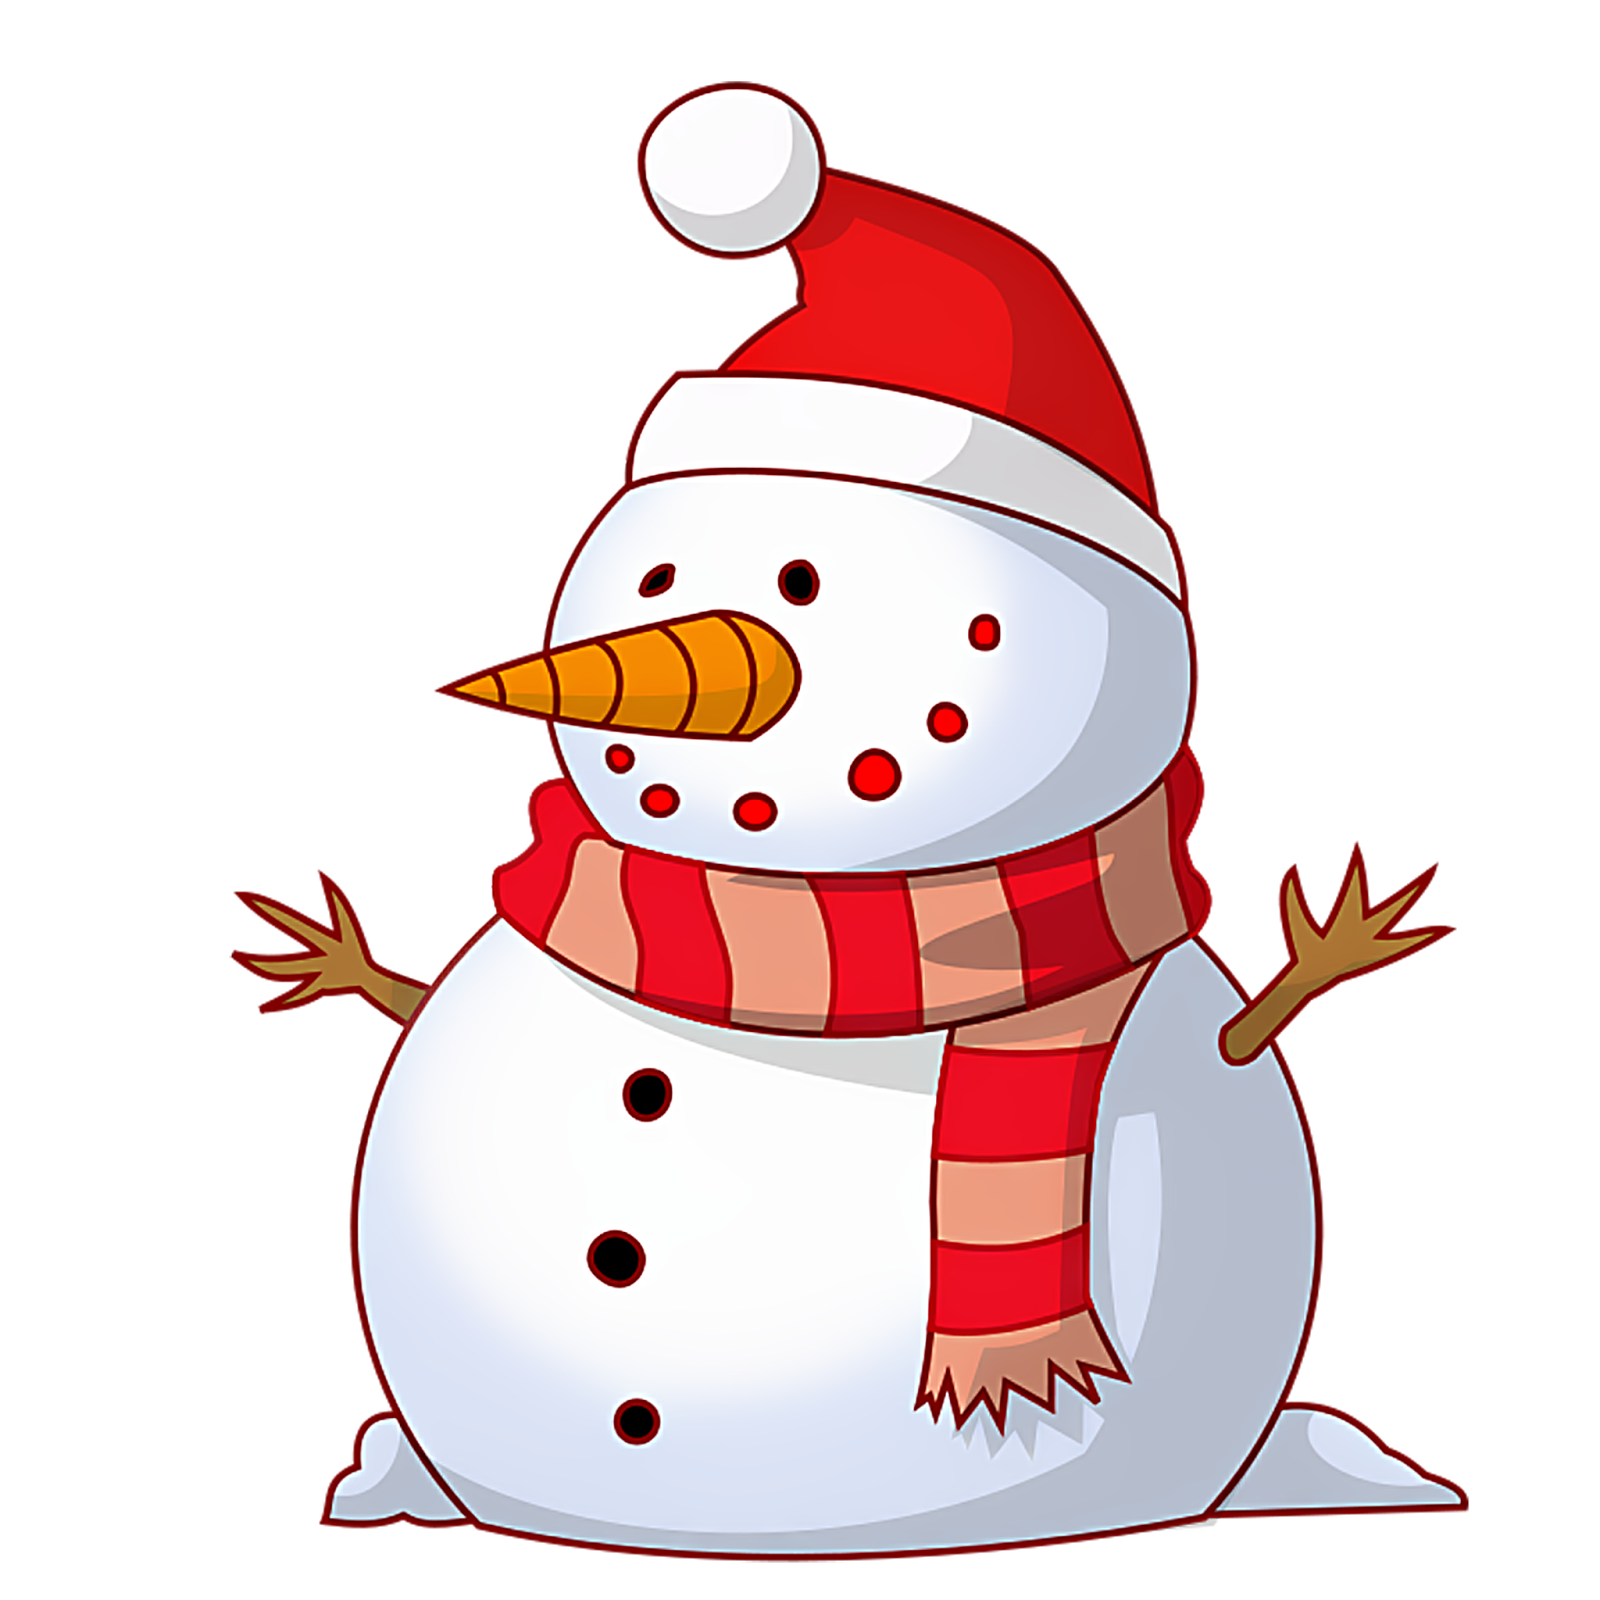 January snowman calendar clipart png gif snowman images | snowman clip art free. | It's The Most ... png